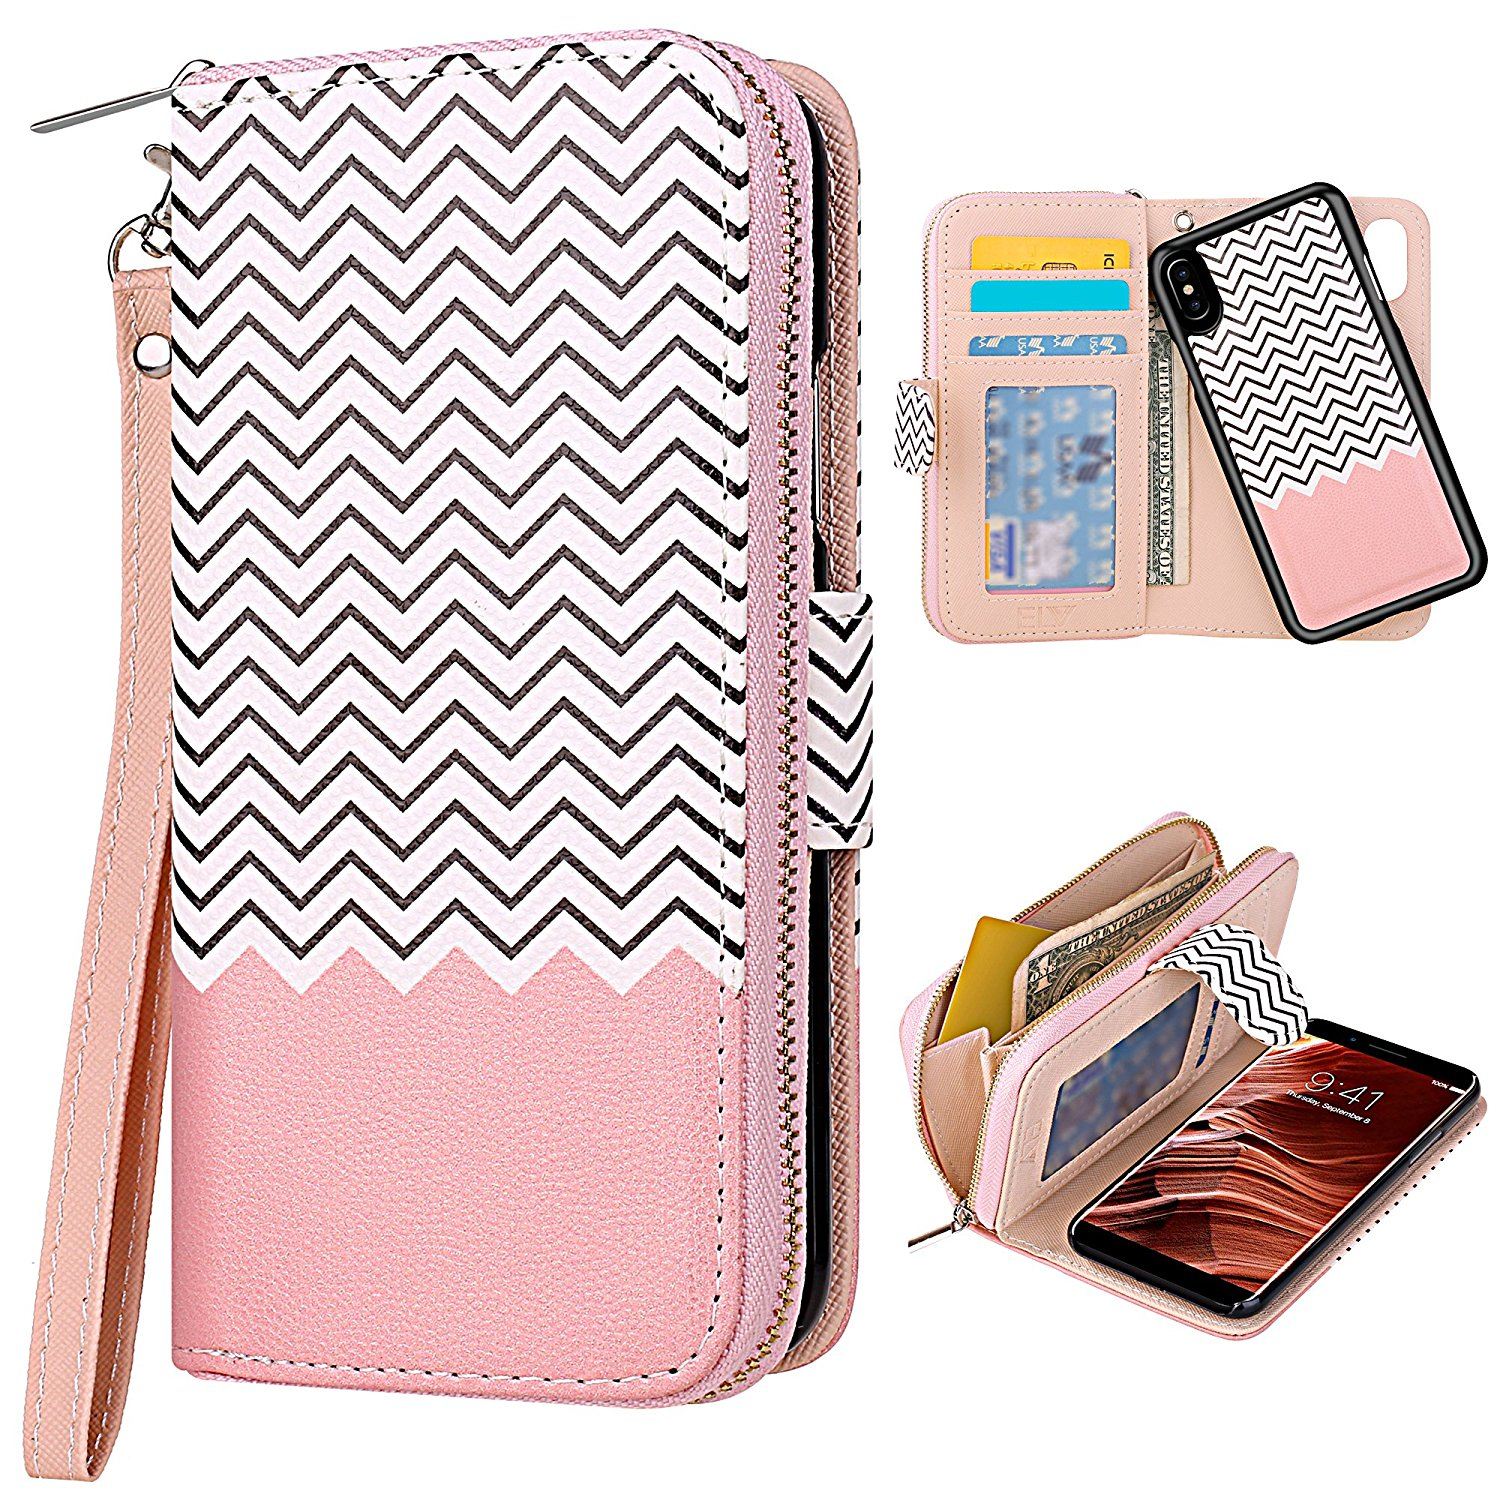 iPhone X Case [Cards Slot Pocket], ELV iPhone X Flip Case [PU Leather] Folio Wallet Purse Protective Magnetic-Closer [Pull tab] Case Cover for Apple iPhone X - FTS